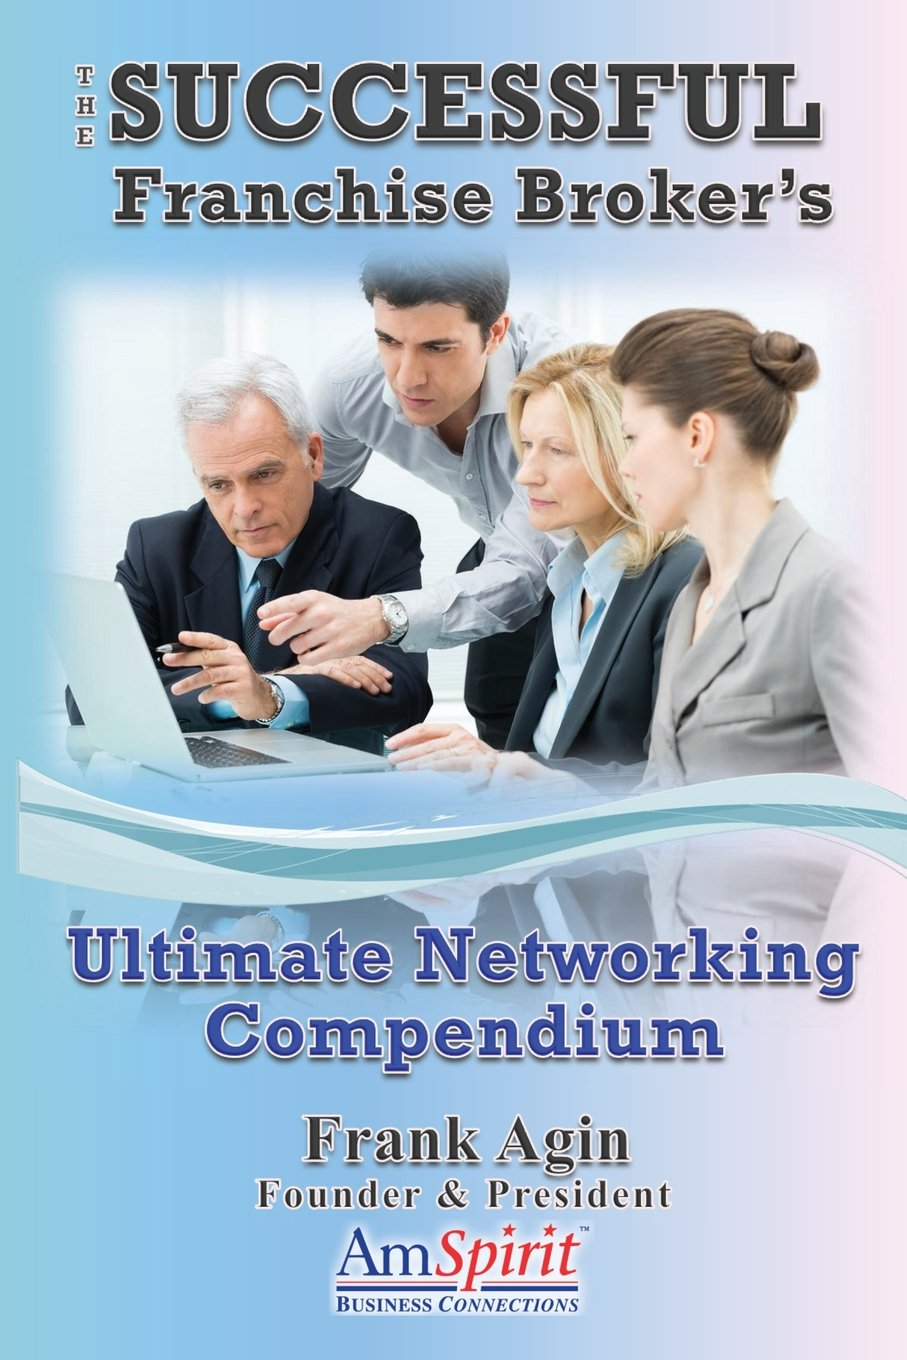 The Successful Franchise Broker's Ultimate Networking Compendium